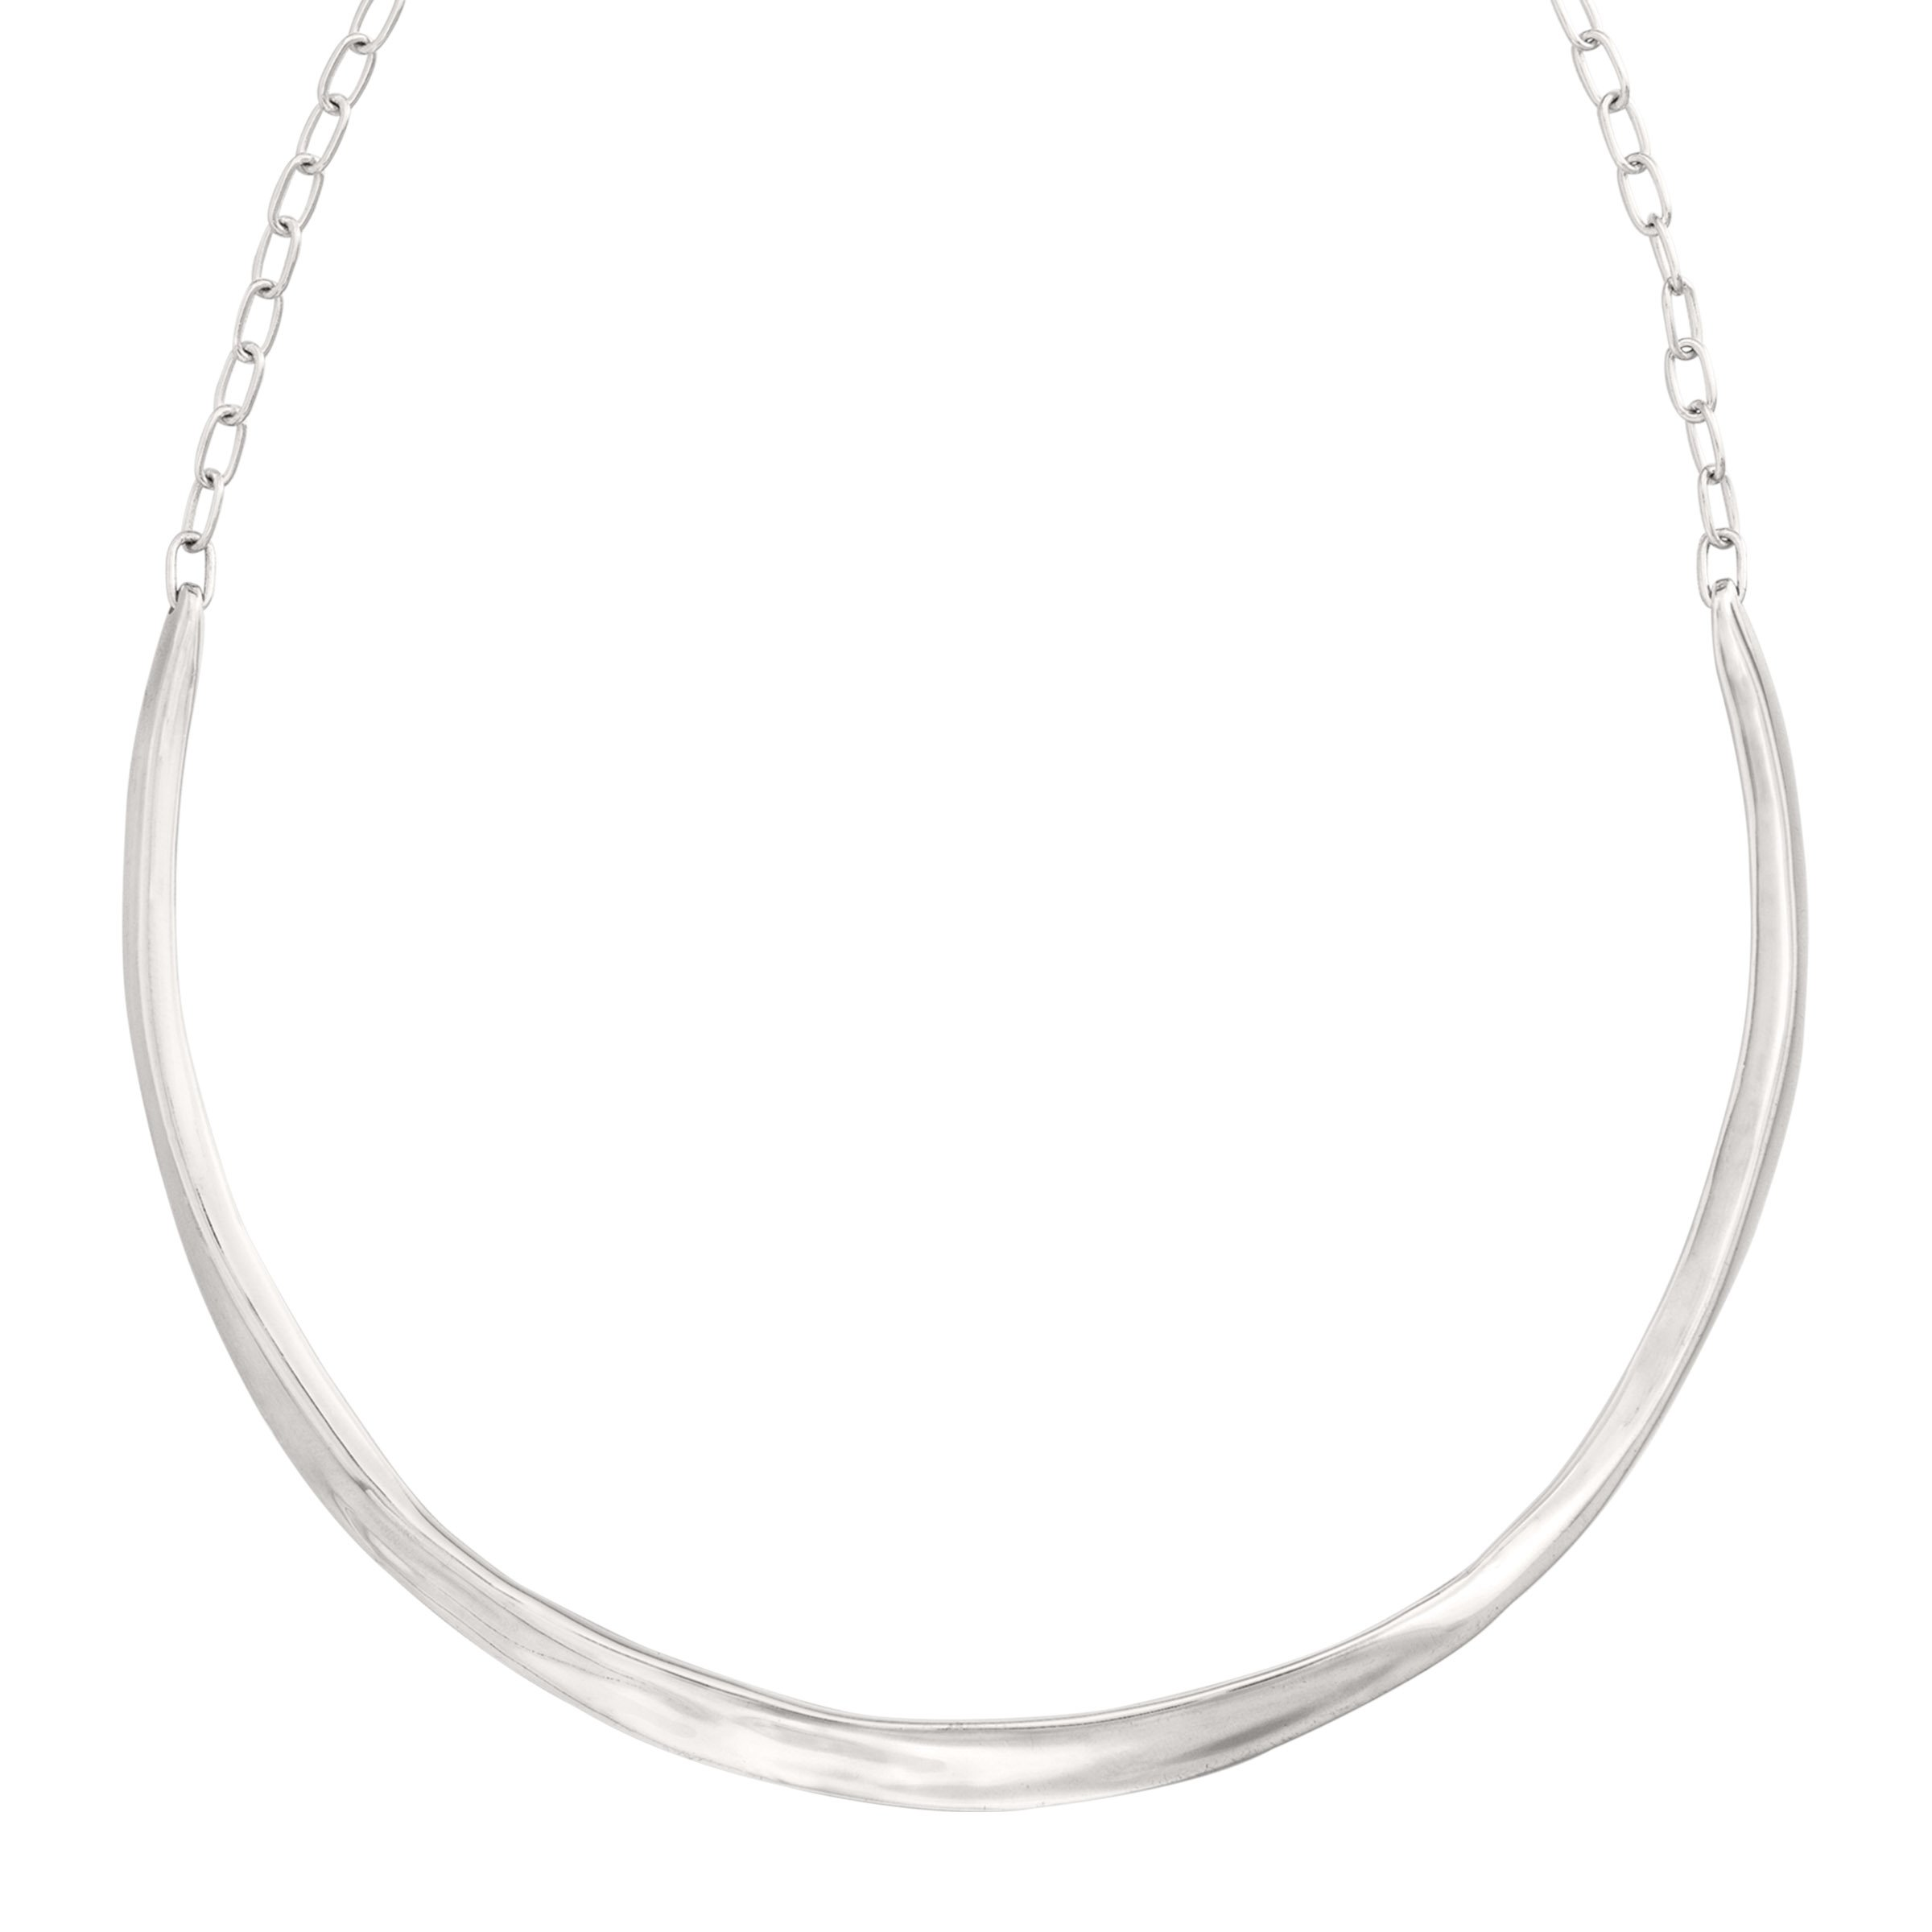 Silpada 'Style Muse' Sterling Silver Necklace, 18''